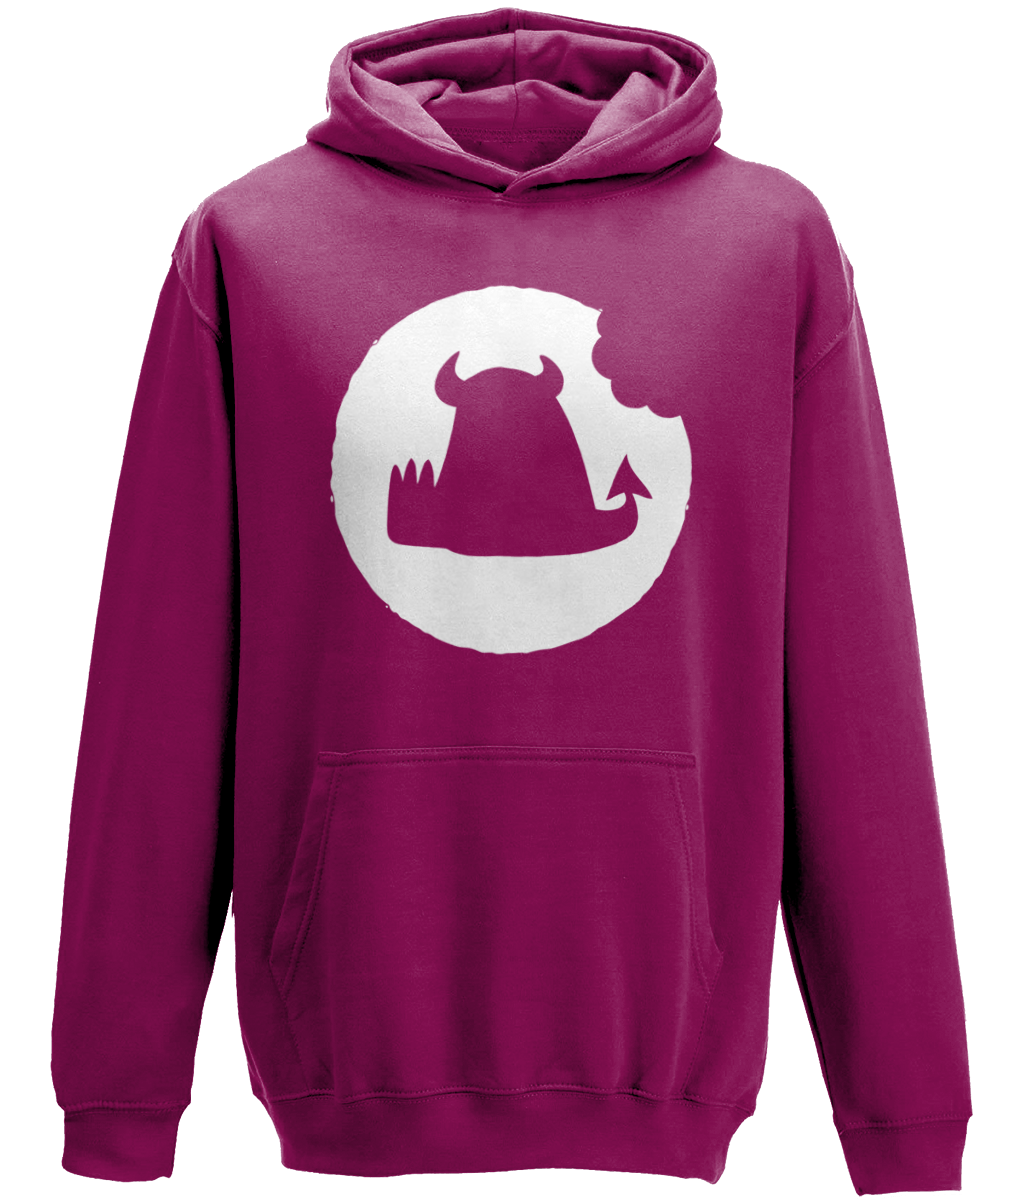 Kids Hoodie - Bite the biscuit - Beasties Clothing